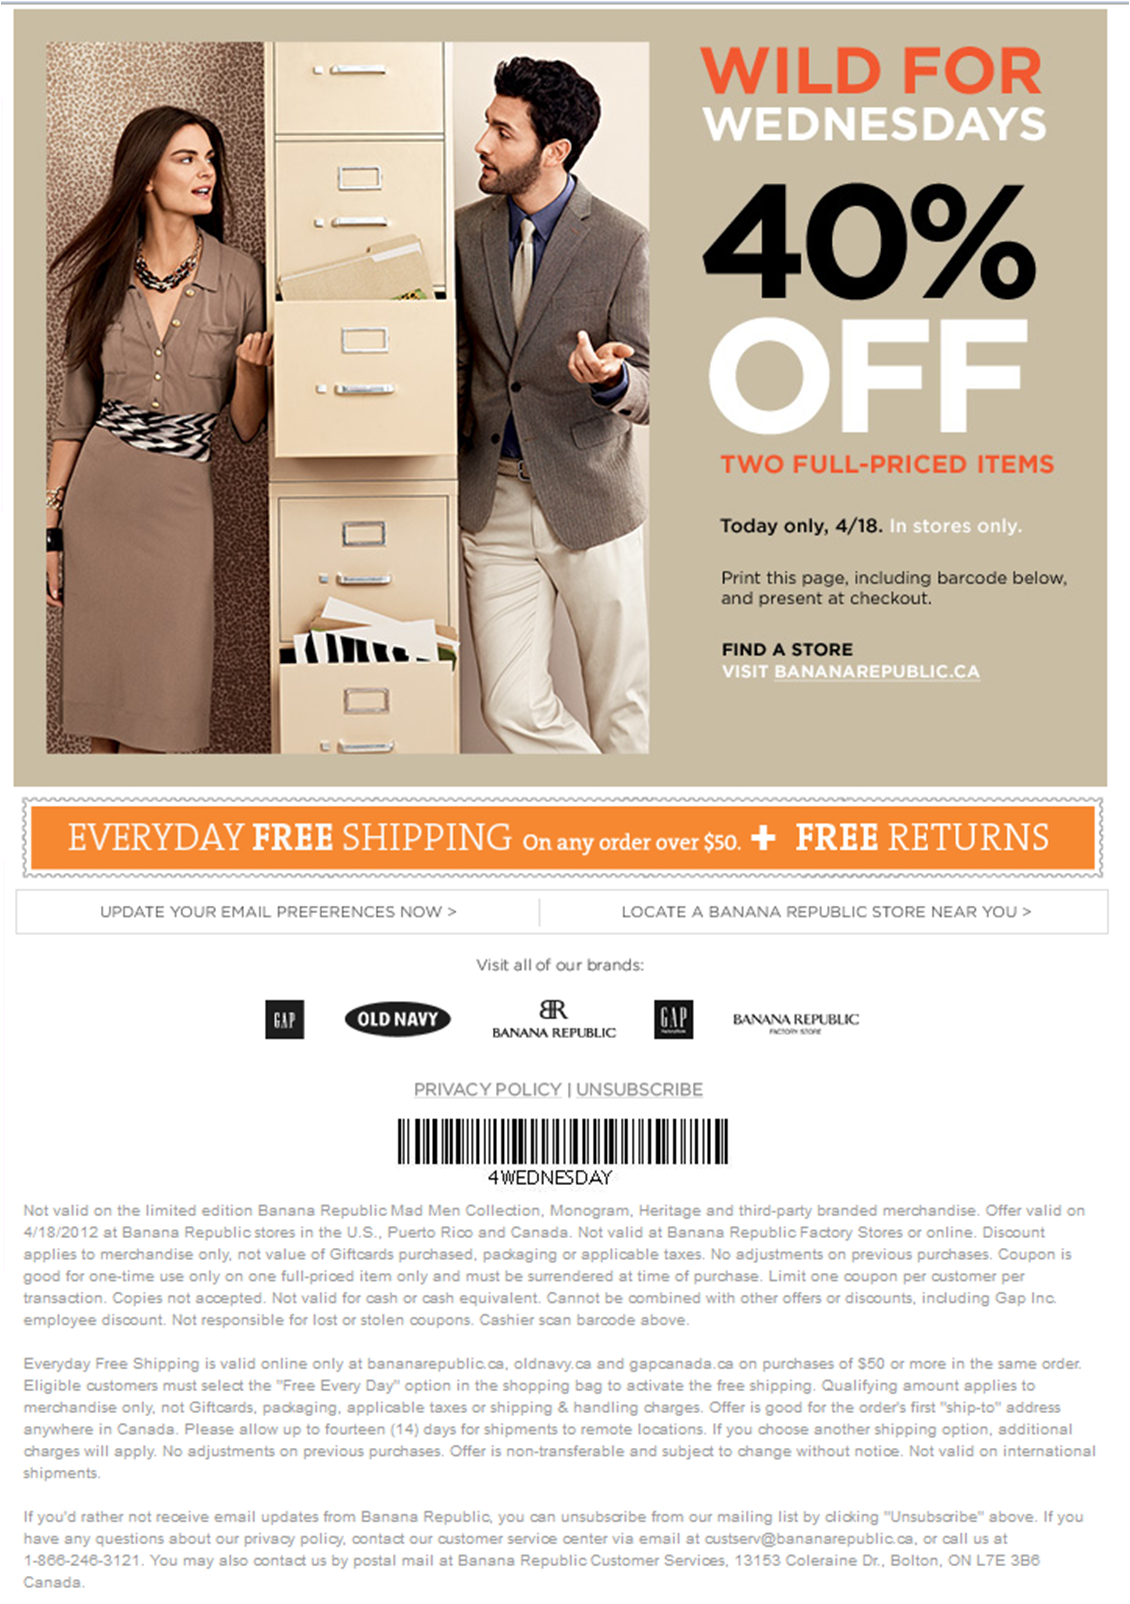 Banana Republic Wendnesday 40% off